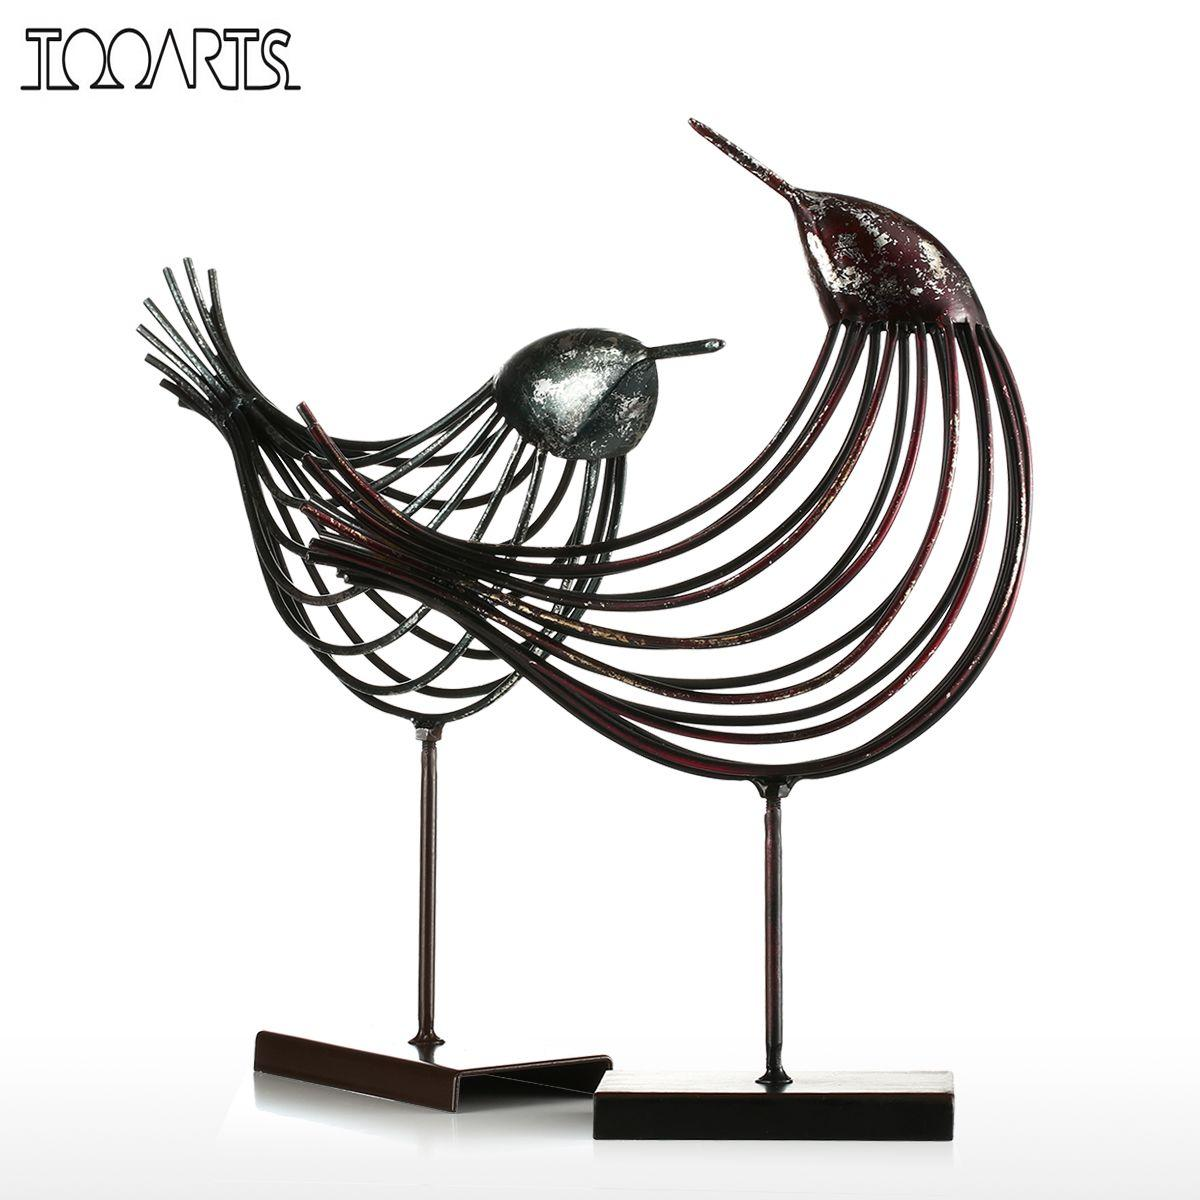 tooarts iron wire bird metal sculpture wonderful sculpture bird modern artwork favor gift home. Black Bedroom Furniture Sets. Home Design Ideas